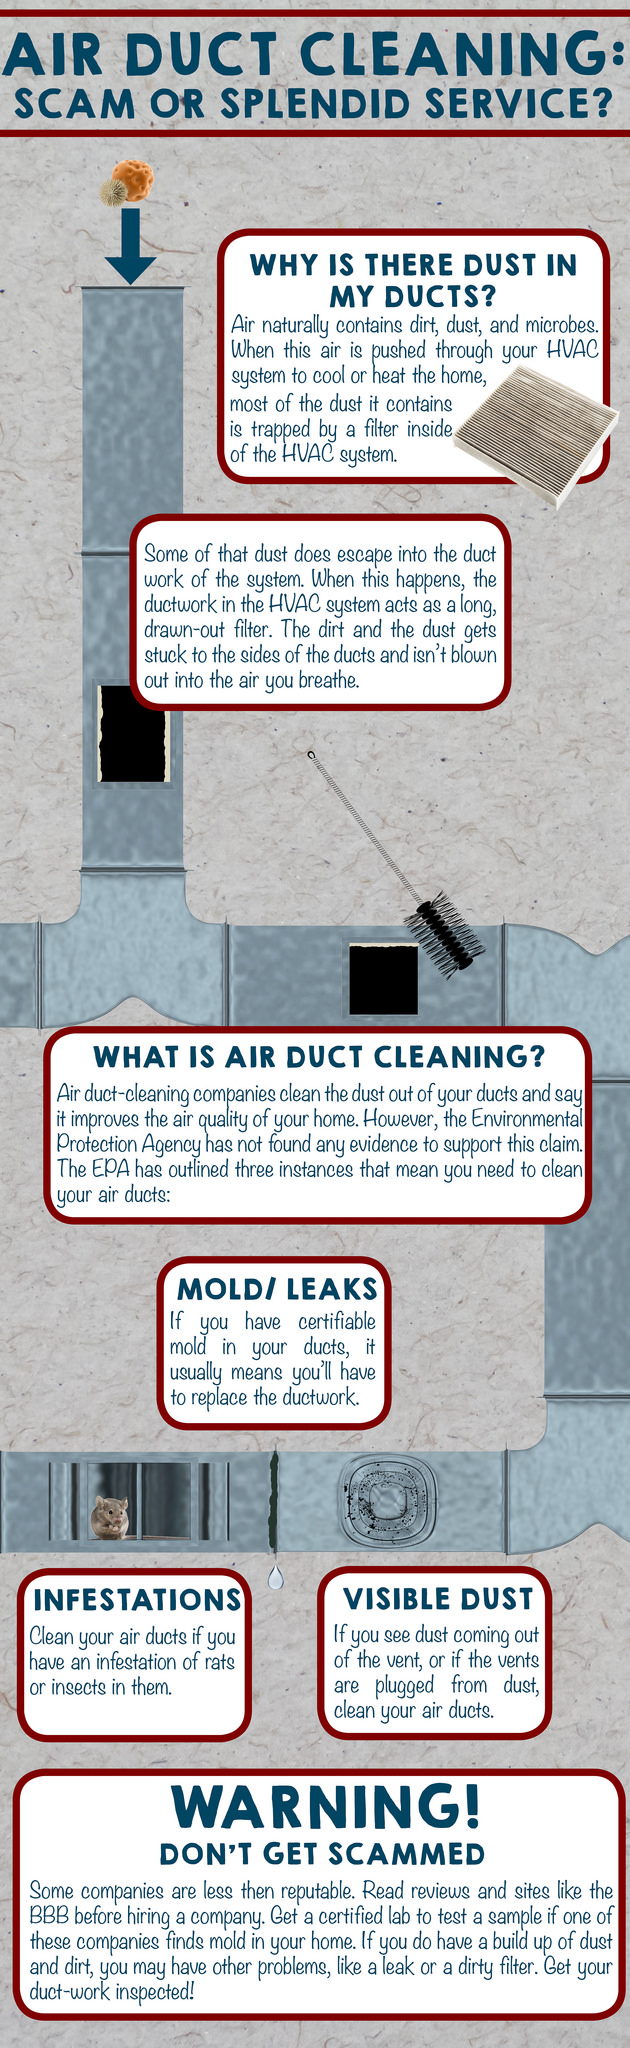 Air duct cleaning! Why you need it and what it is! Call